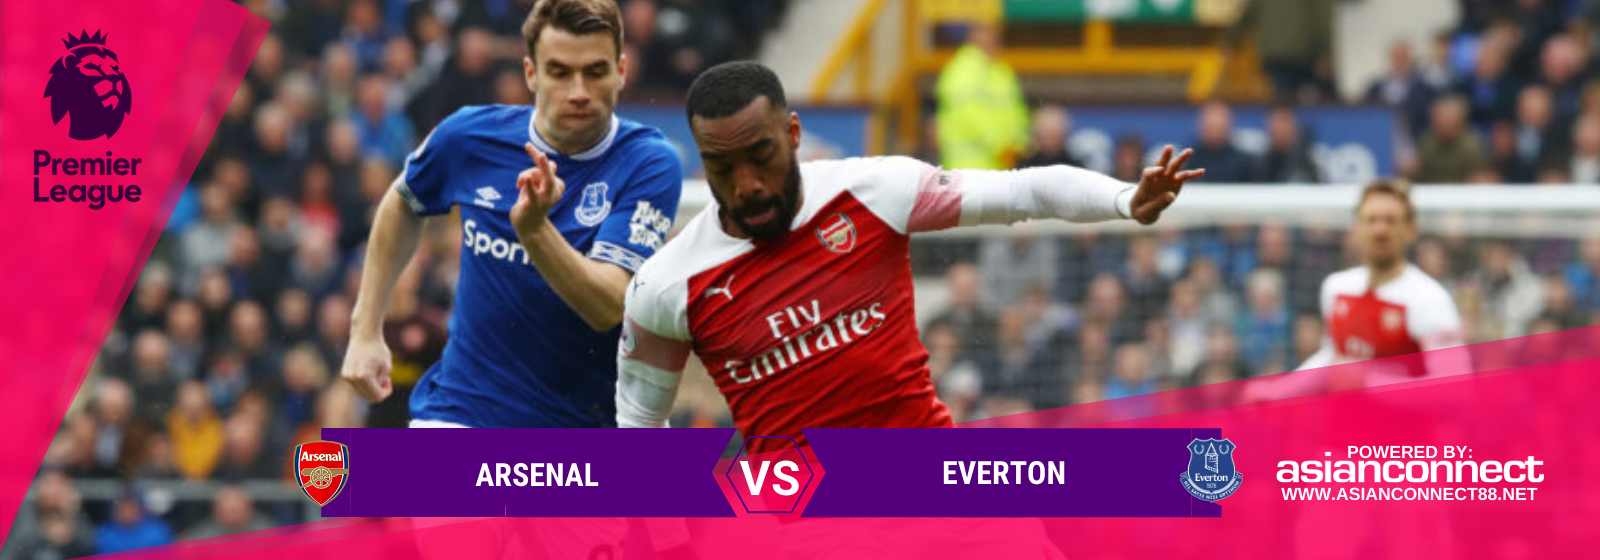 Asianodds: Arsenal vs Everton Odds for February 23, 2020